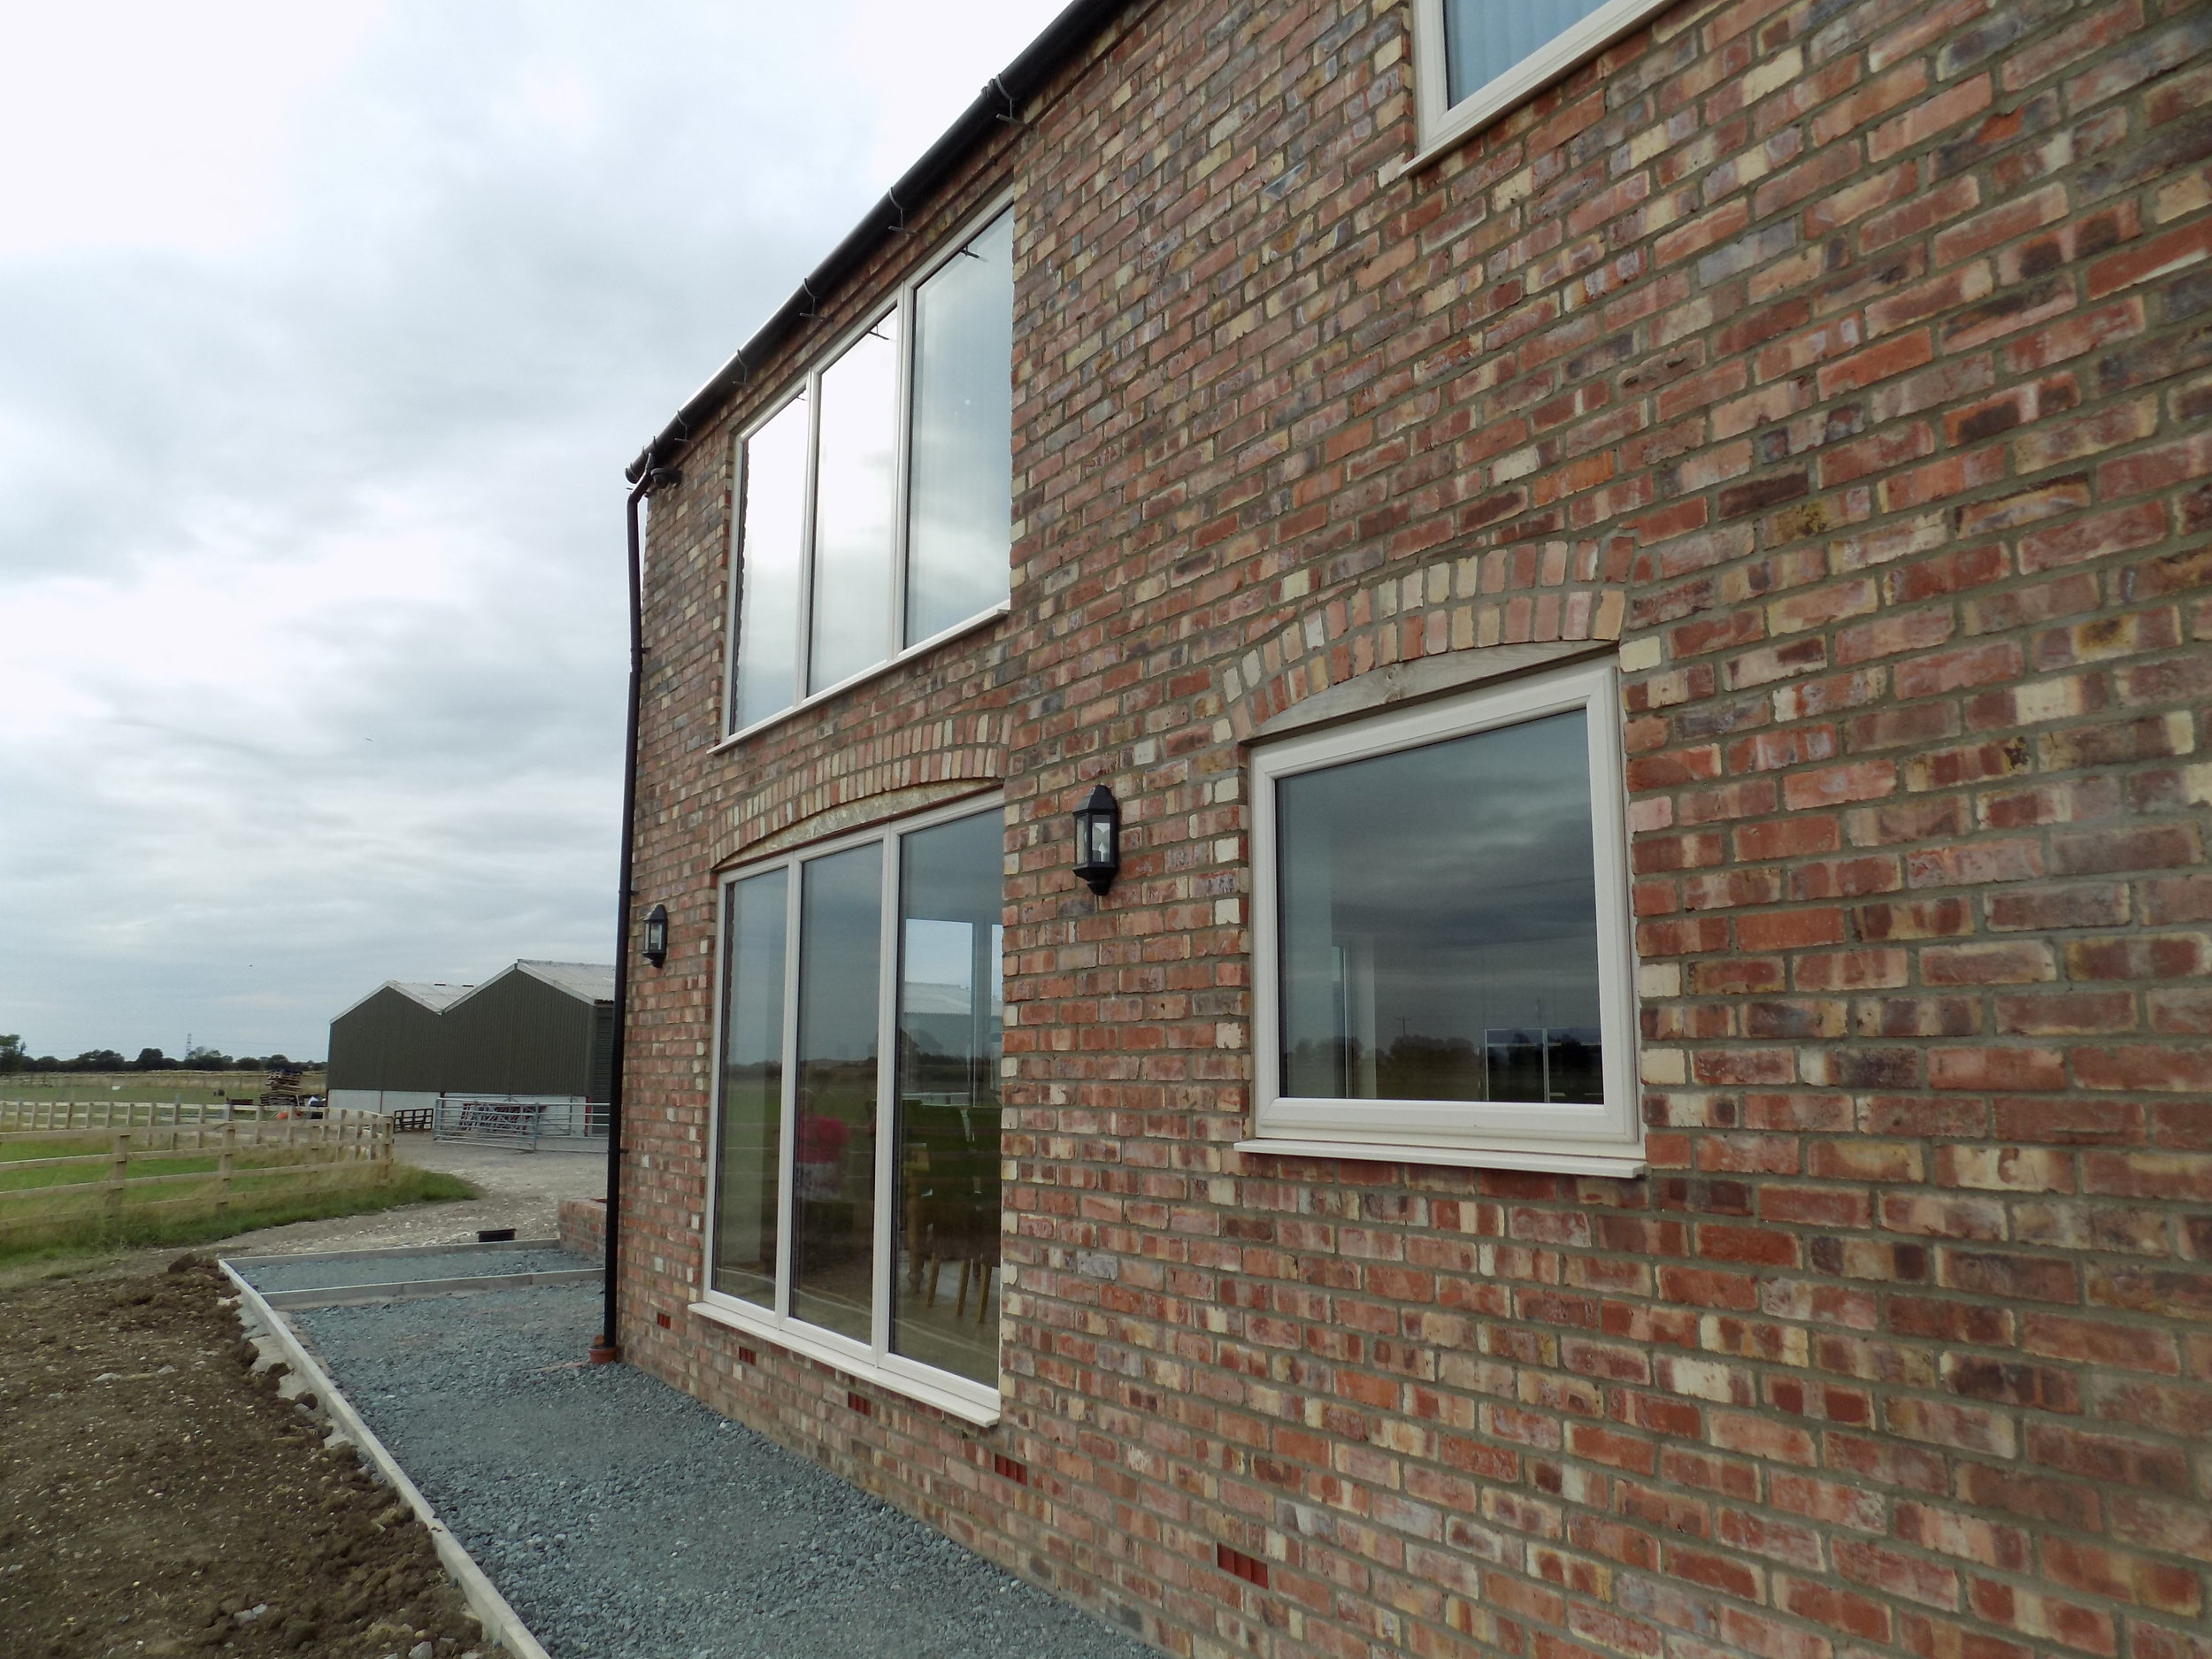 Lelley Farmhouse 6 - East Yorkshire Architects - Samuel Kendall Associates.jpg